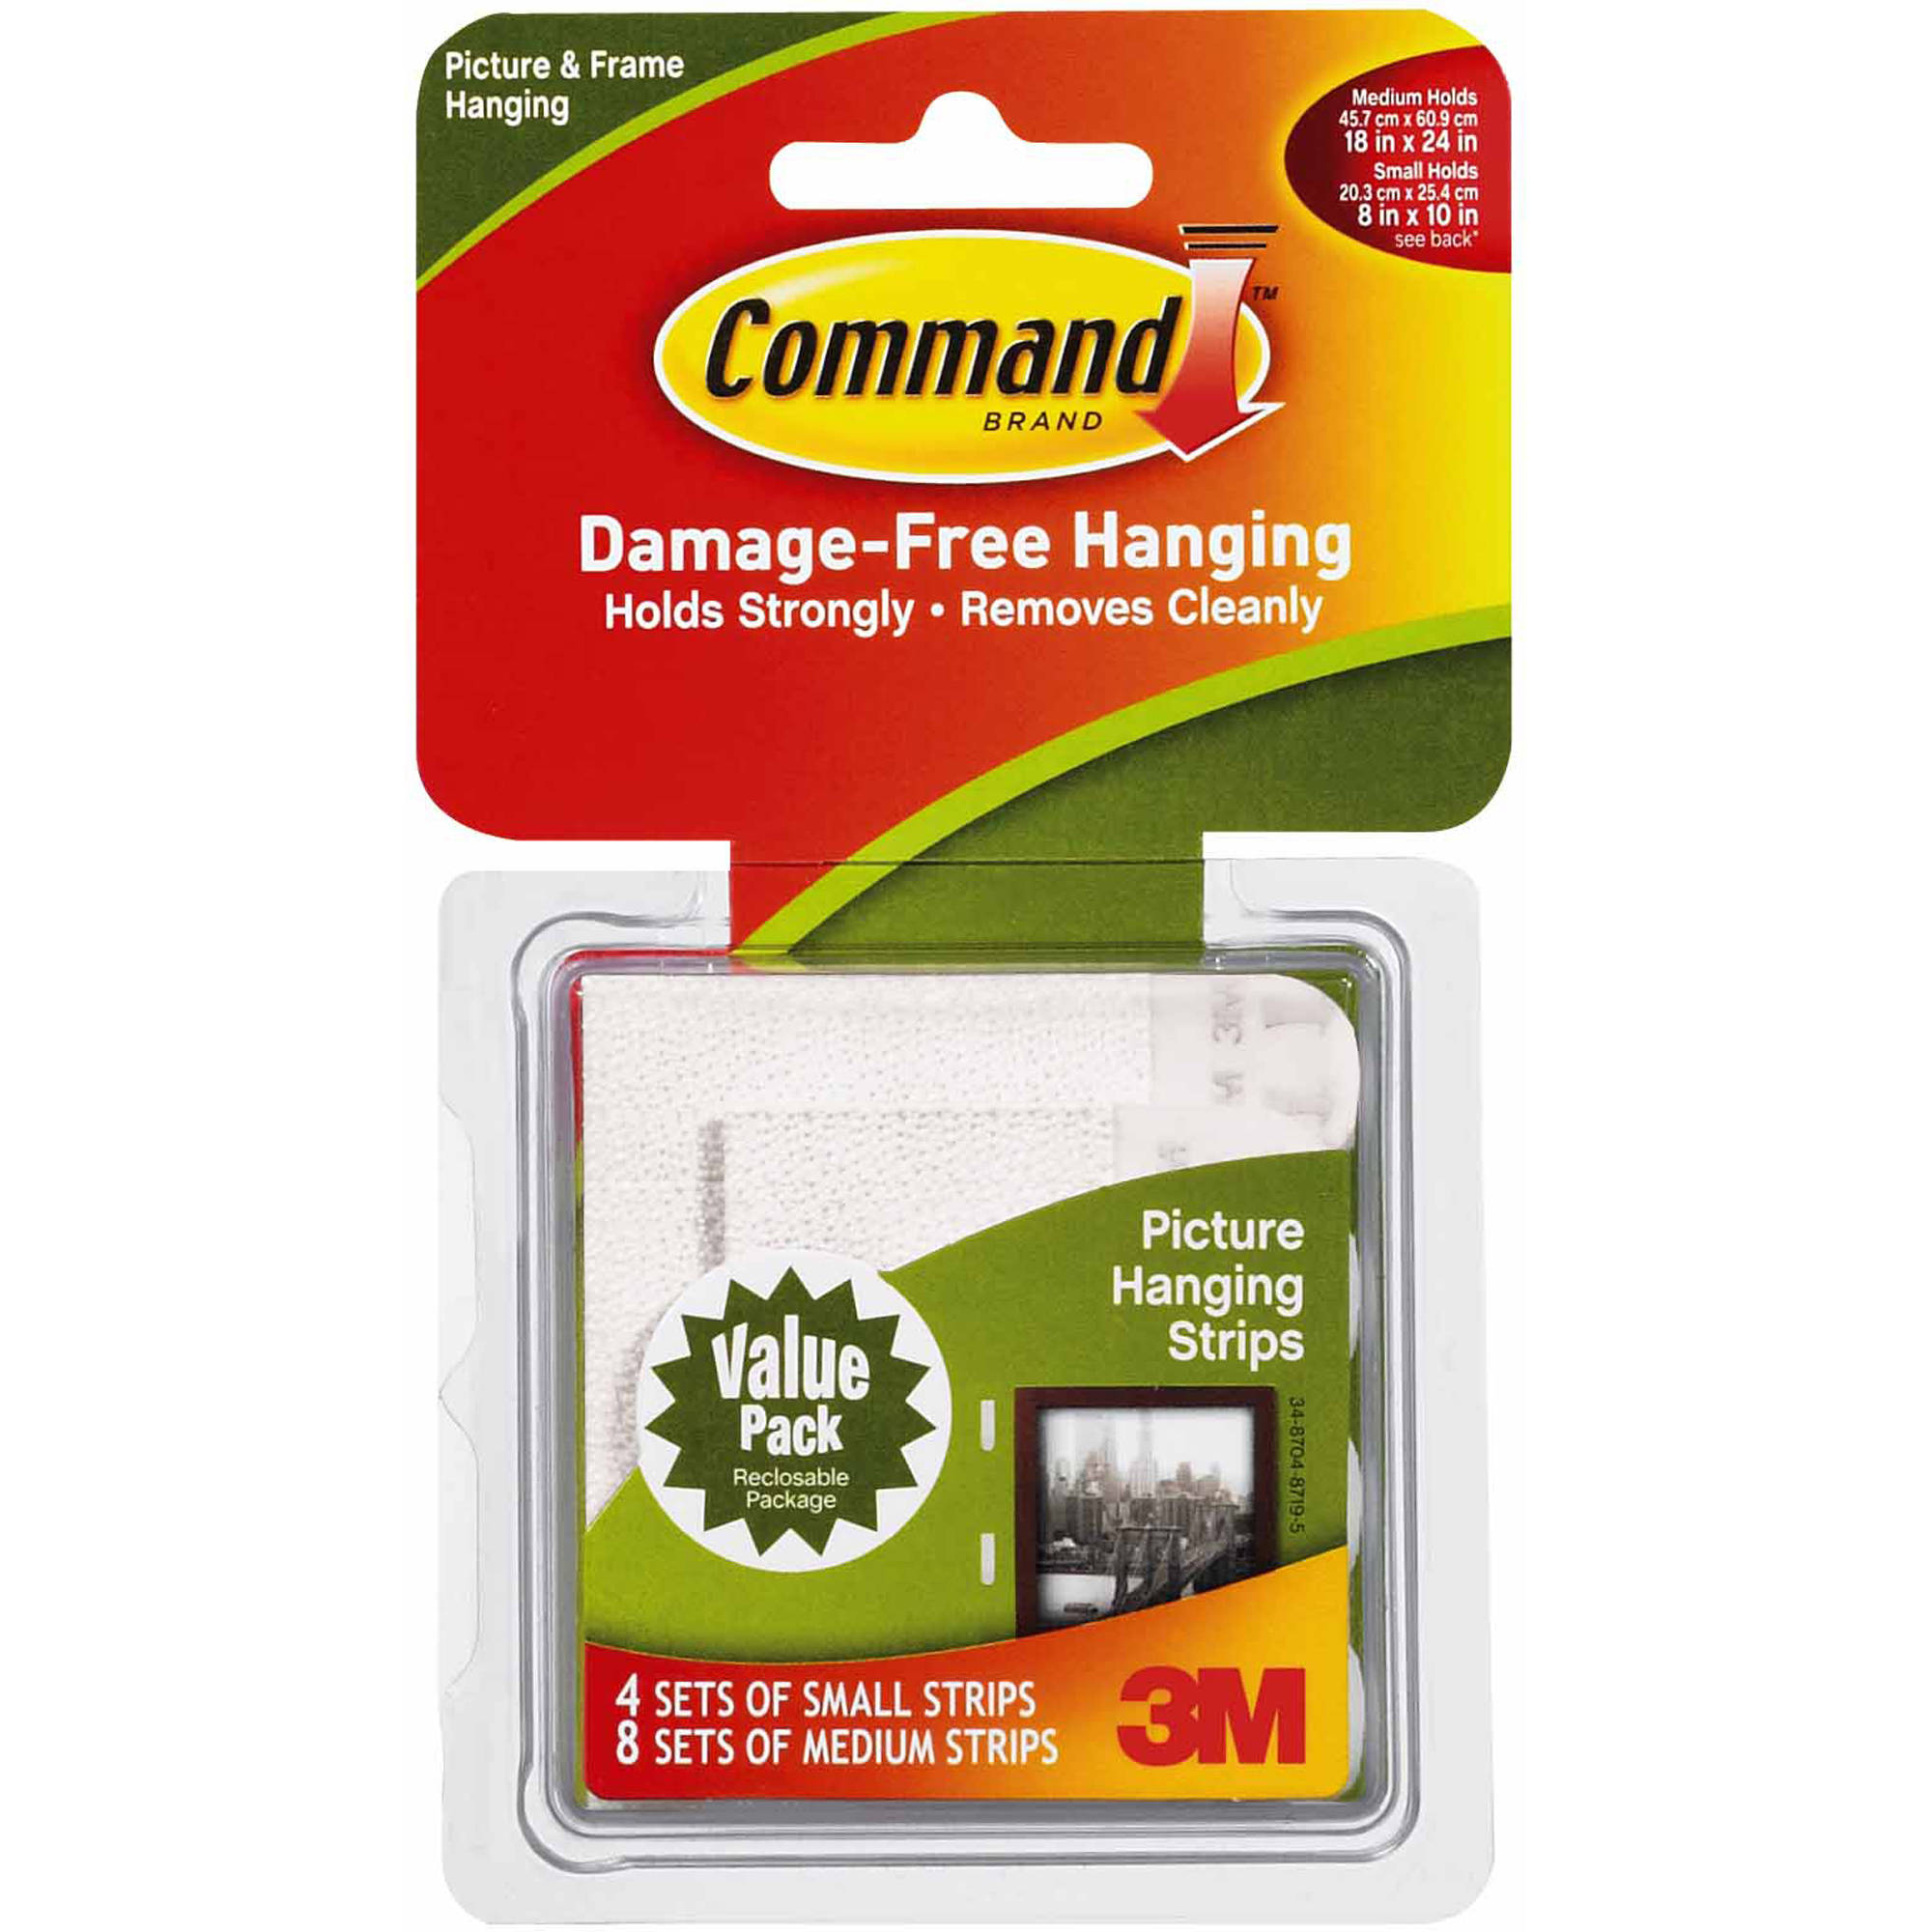 3M 17203 Command Picture Hanging Strips Combo Pack